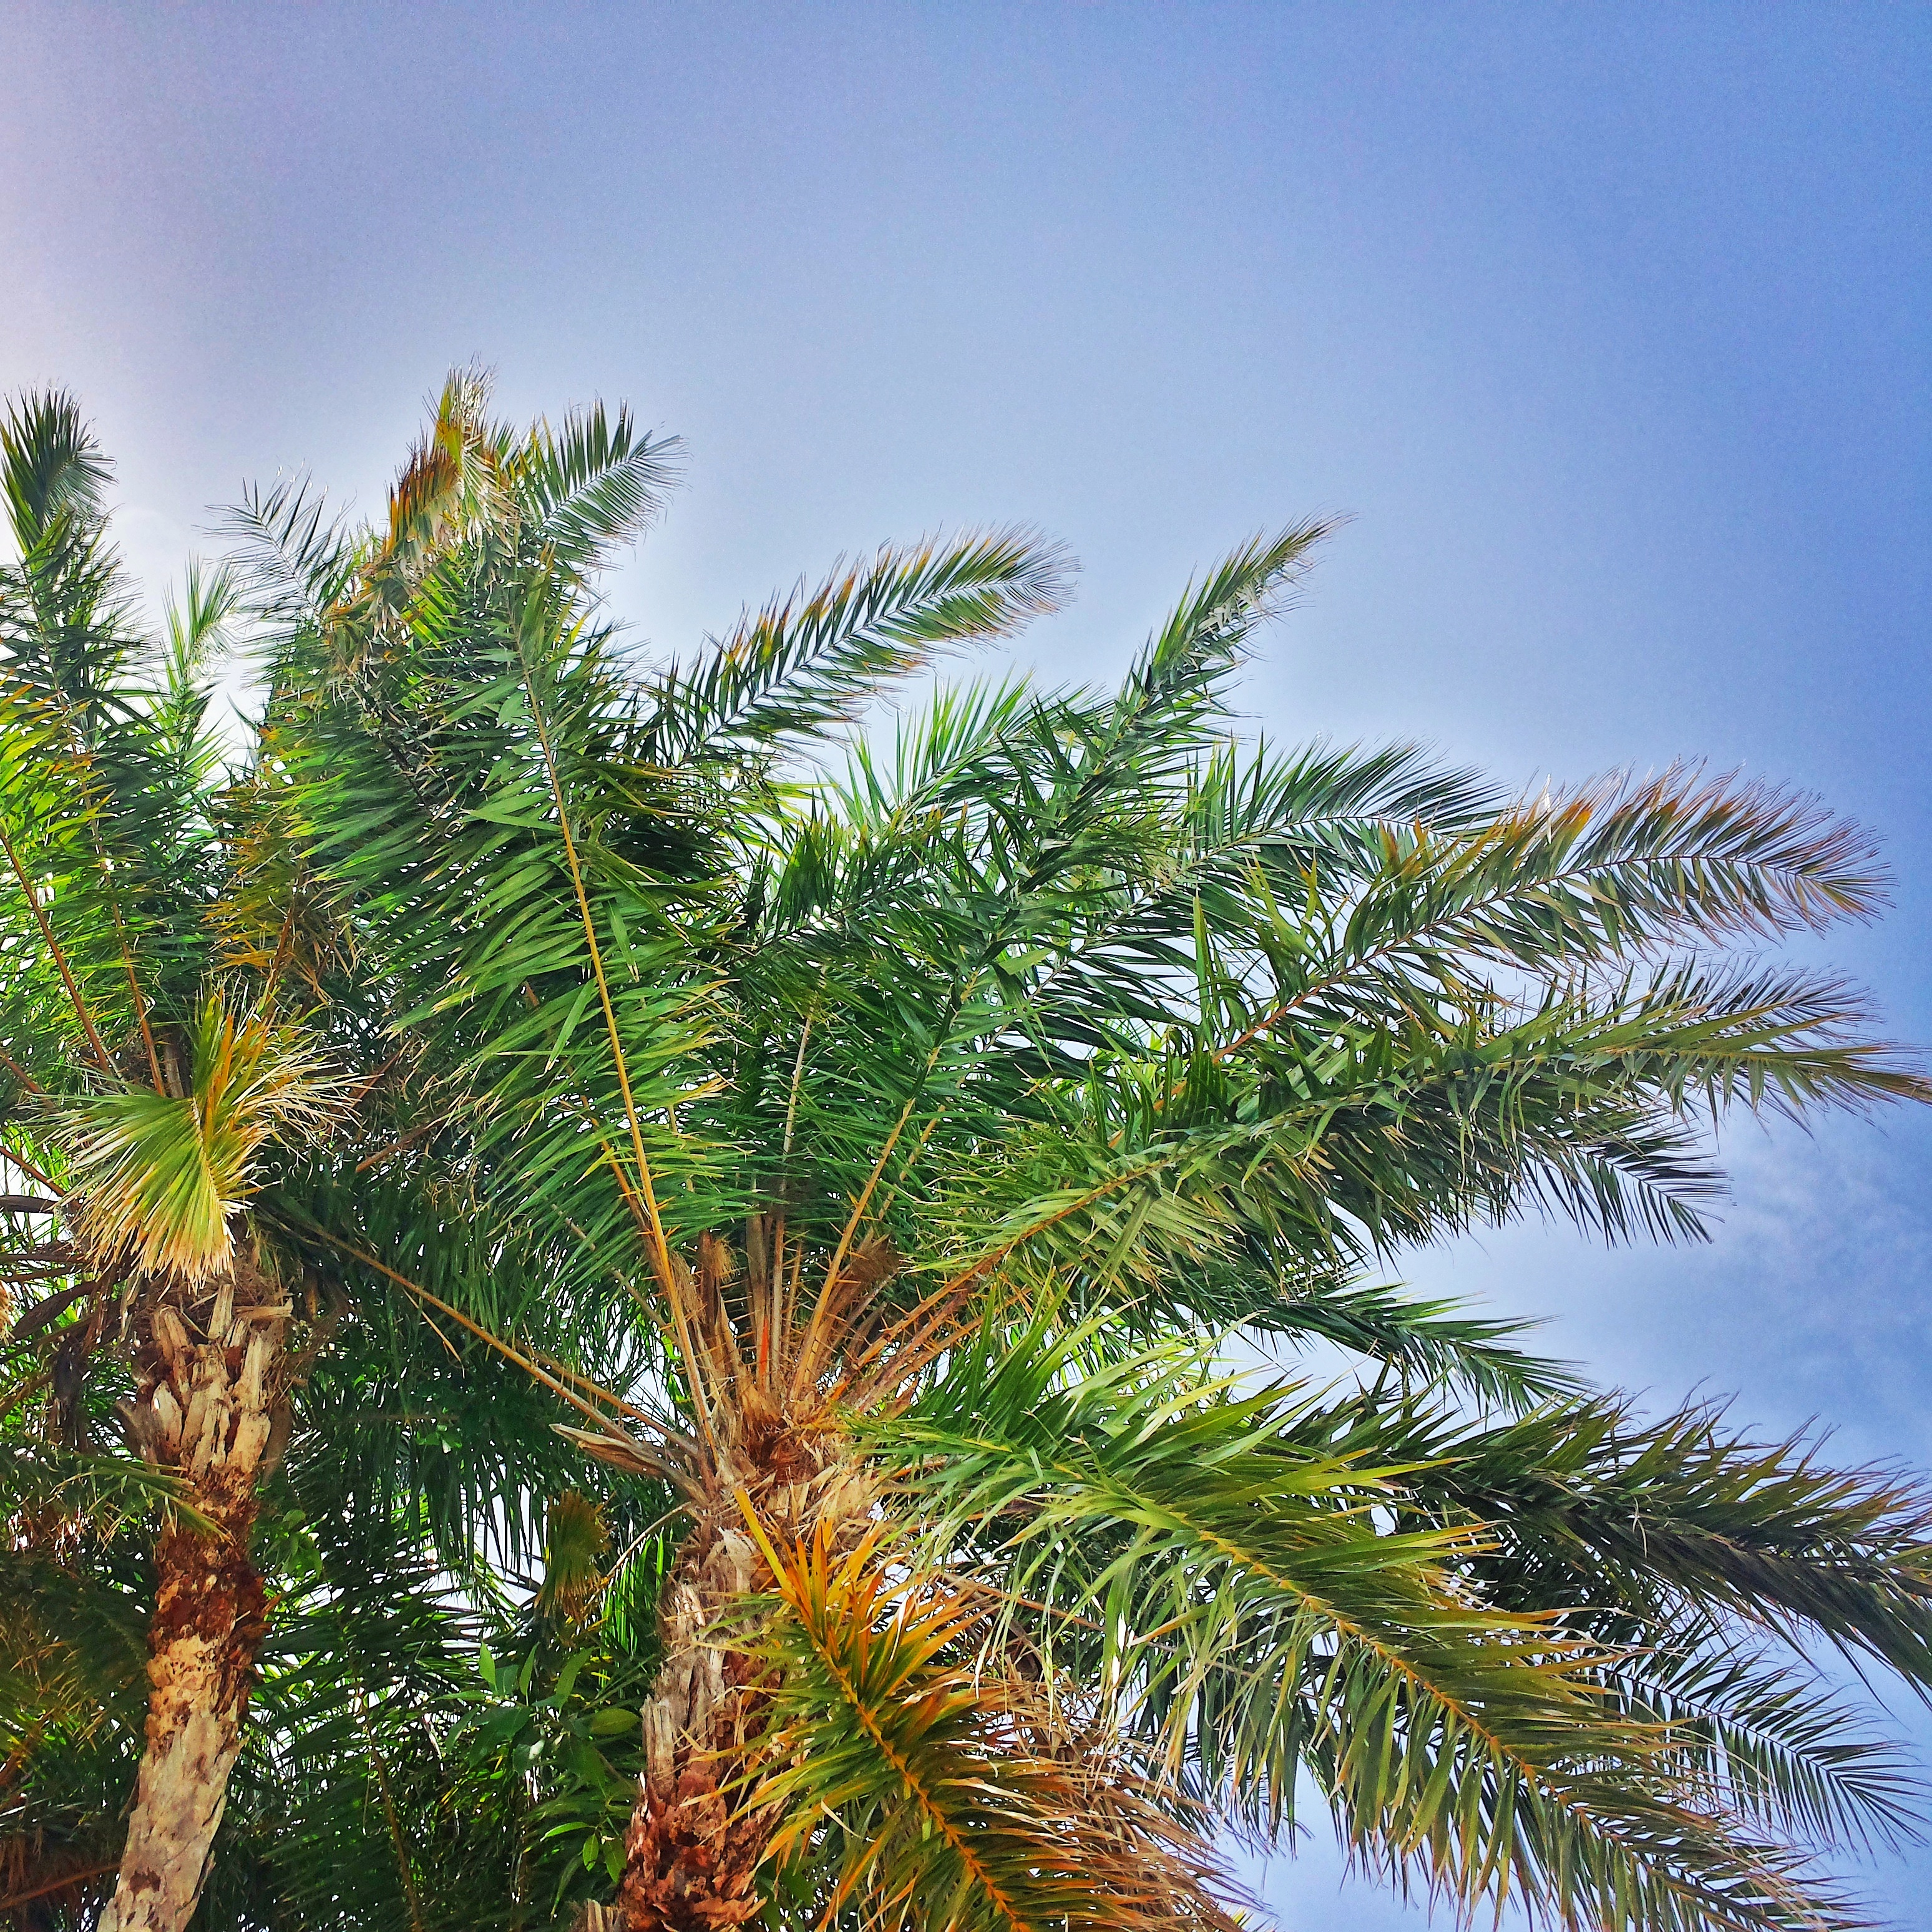 Boynton Beach palms